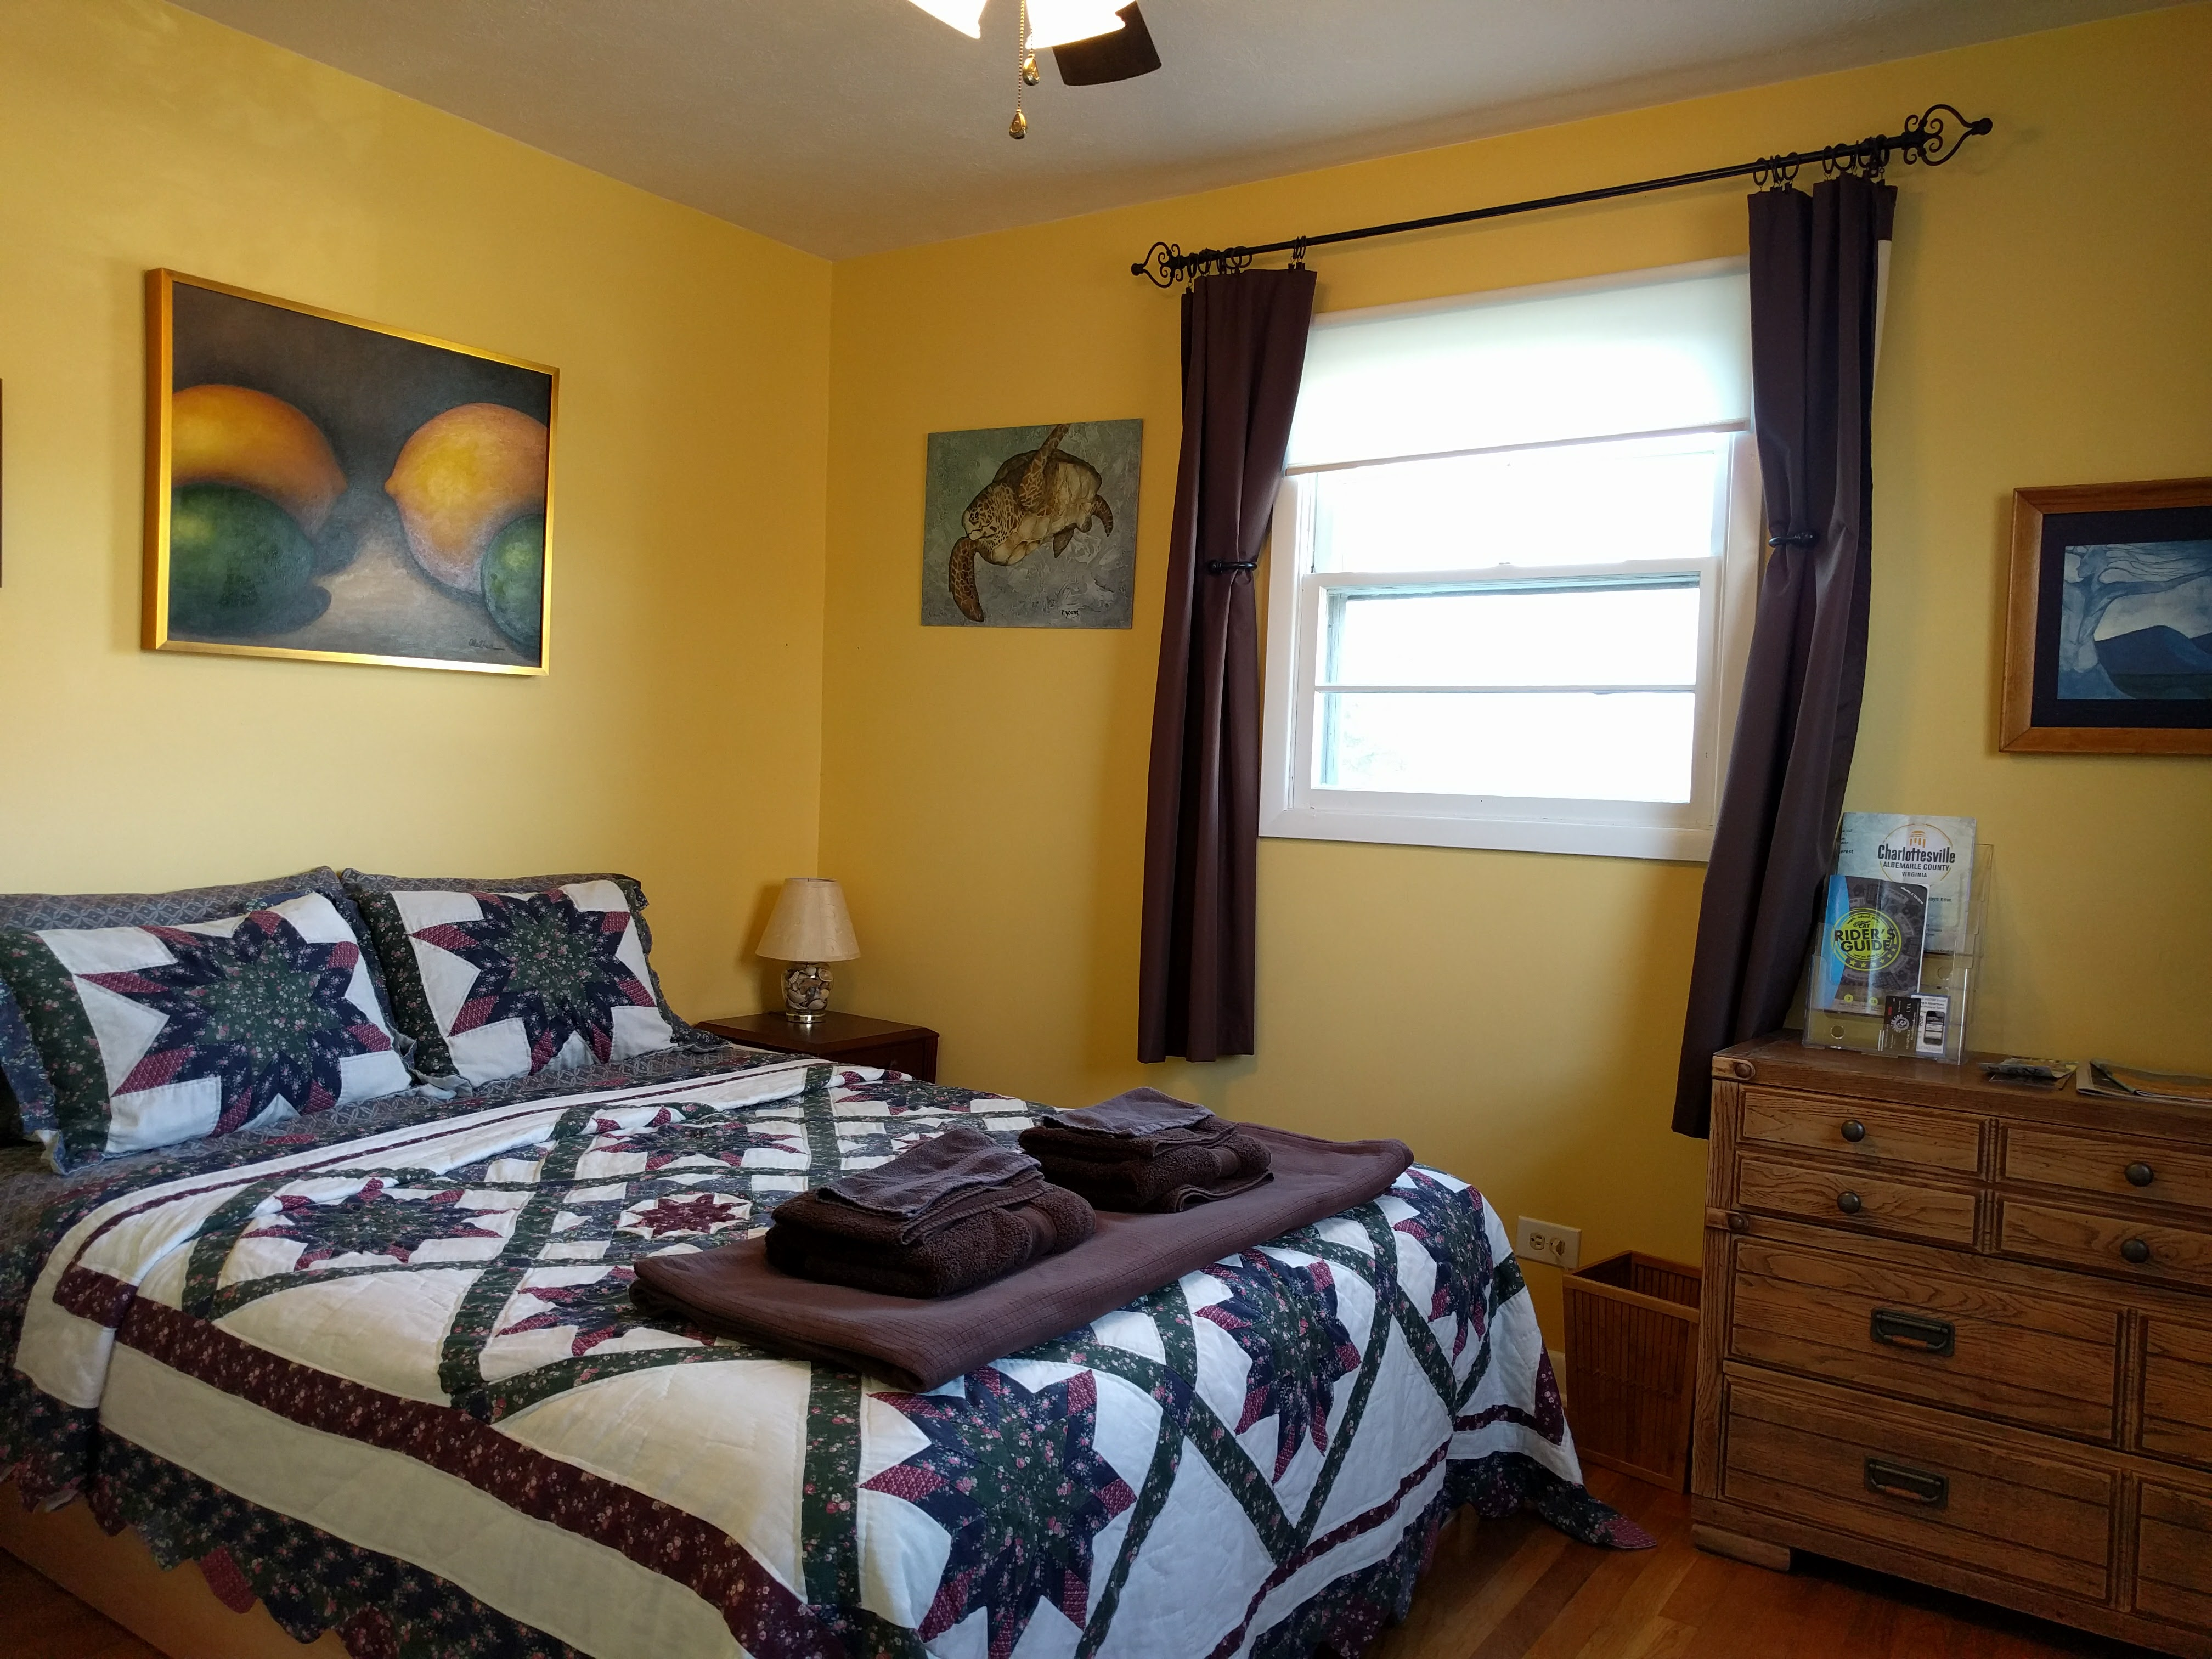 tidewater-room-at-fairhaven-guesthouse-charlottesville-va-6